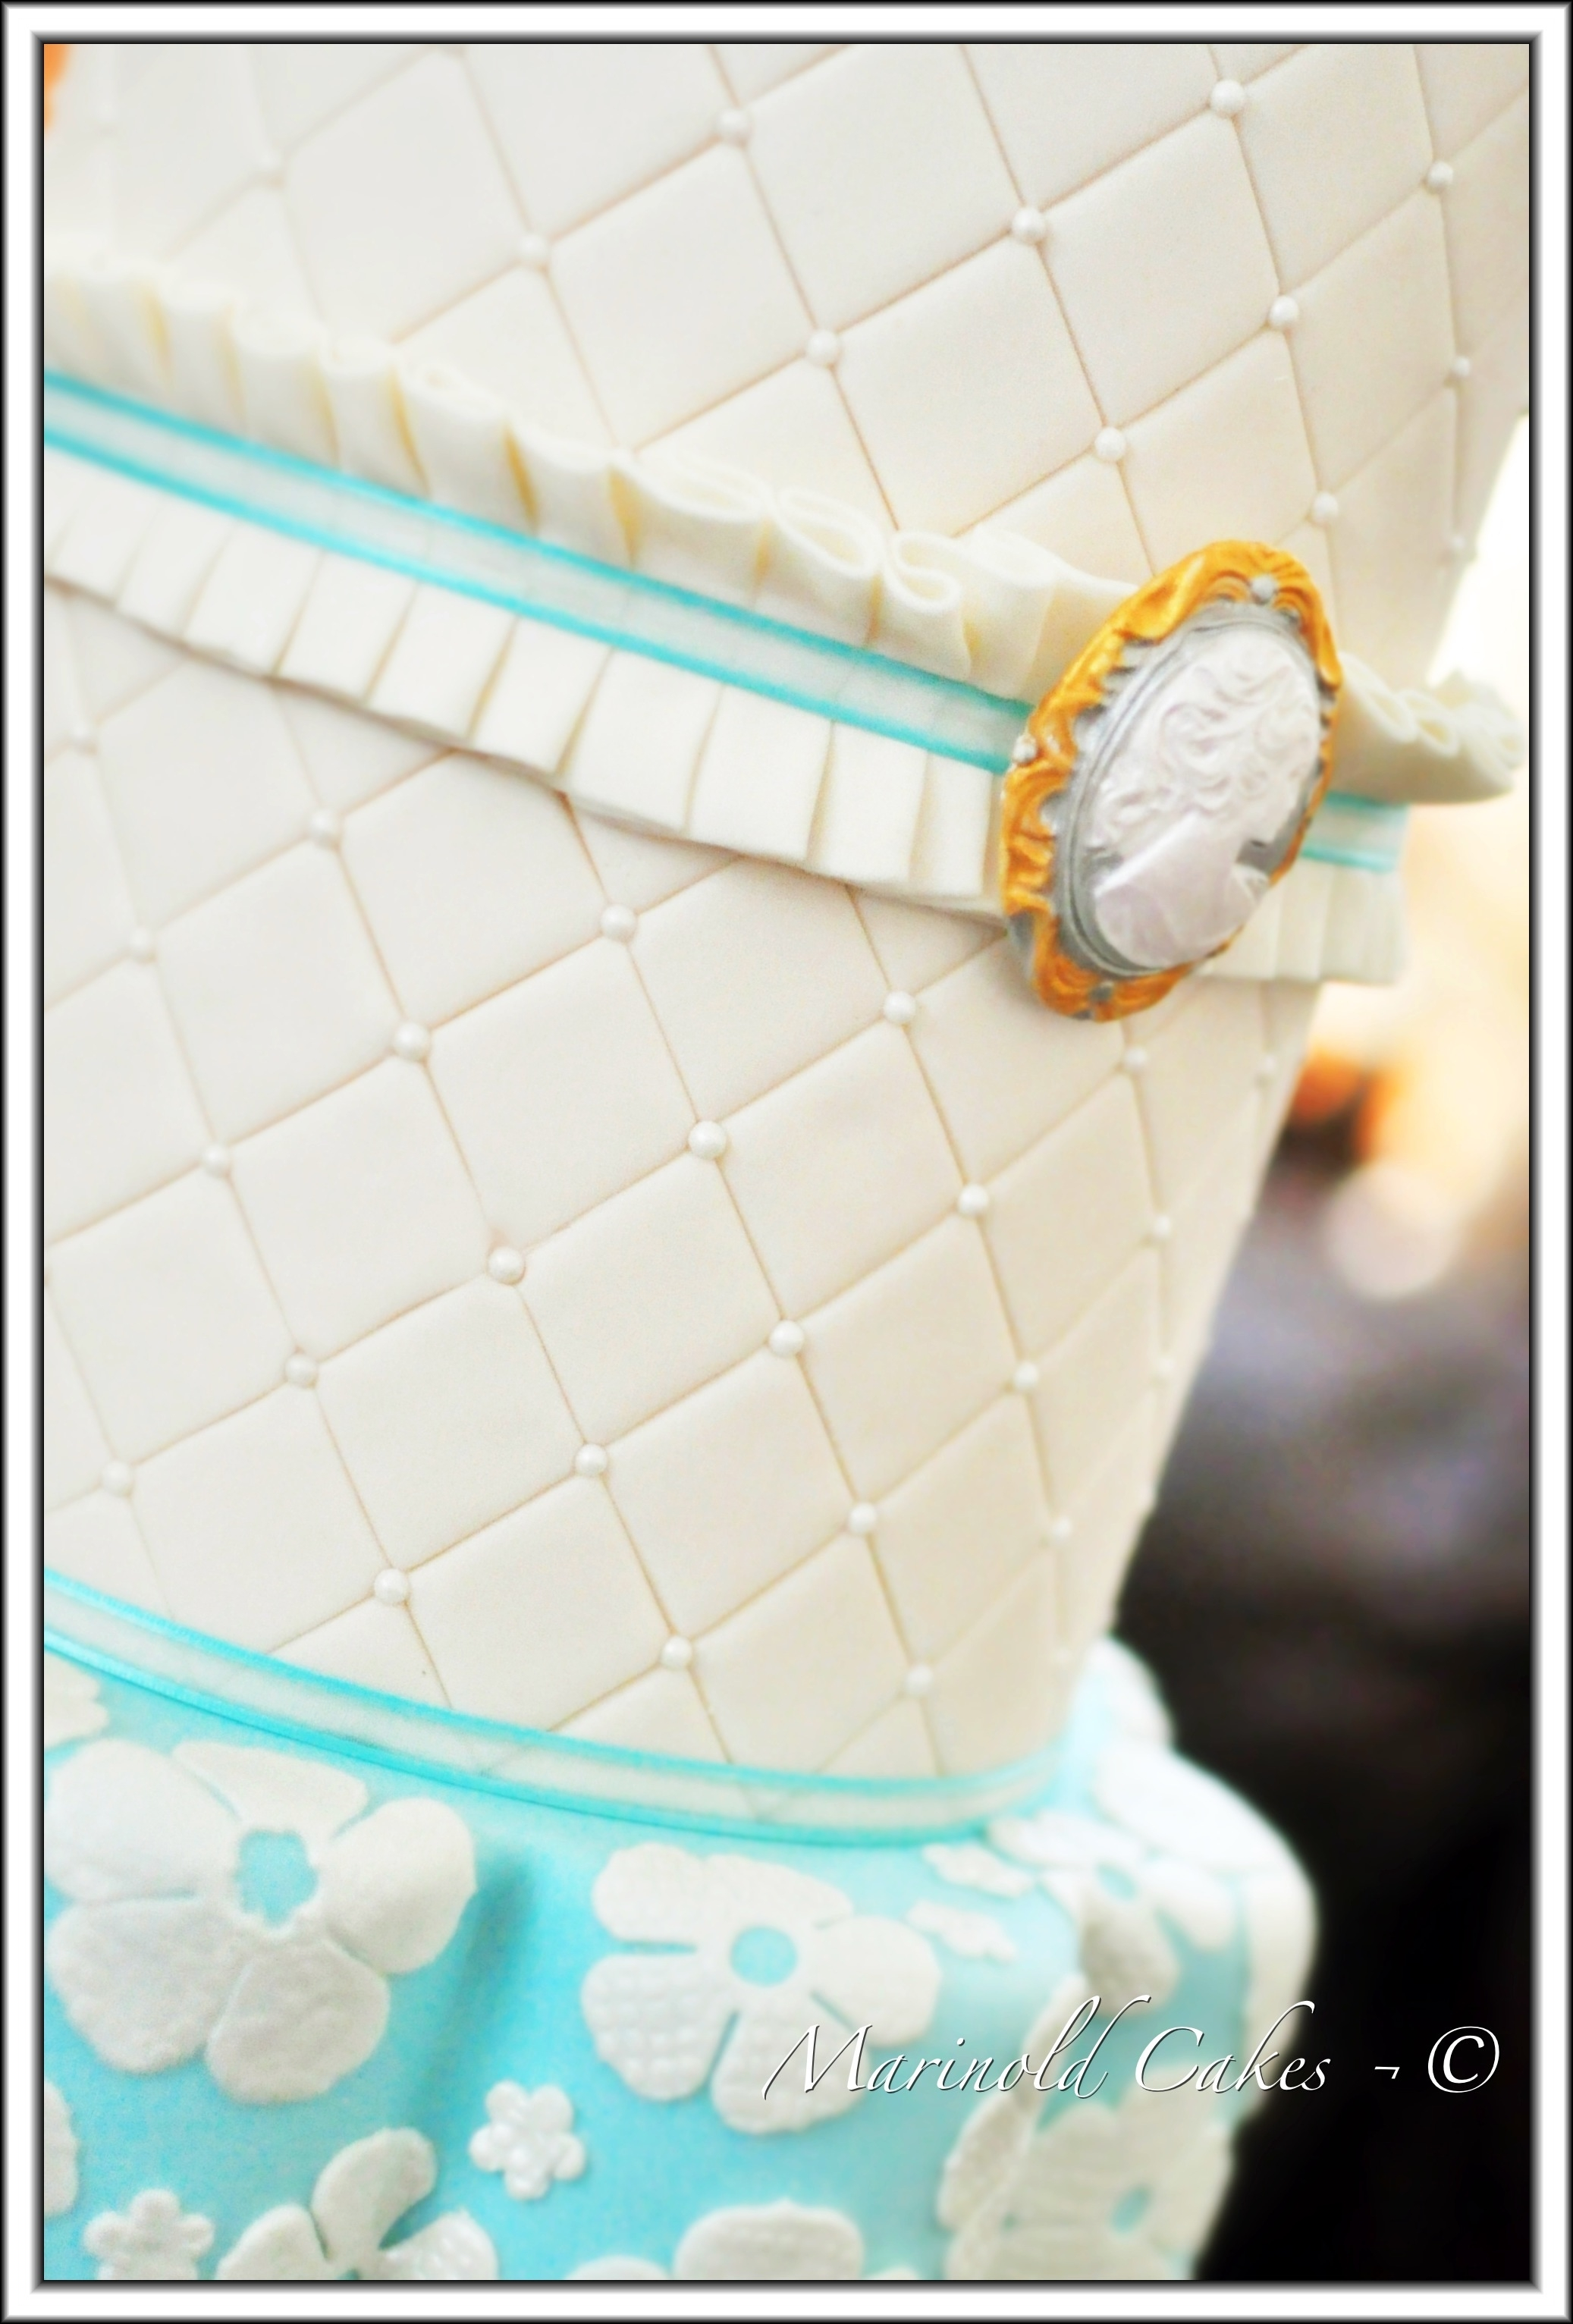 Round Teal Wedding Cake With Cameo - CakeCentral.com